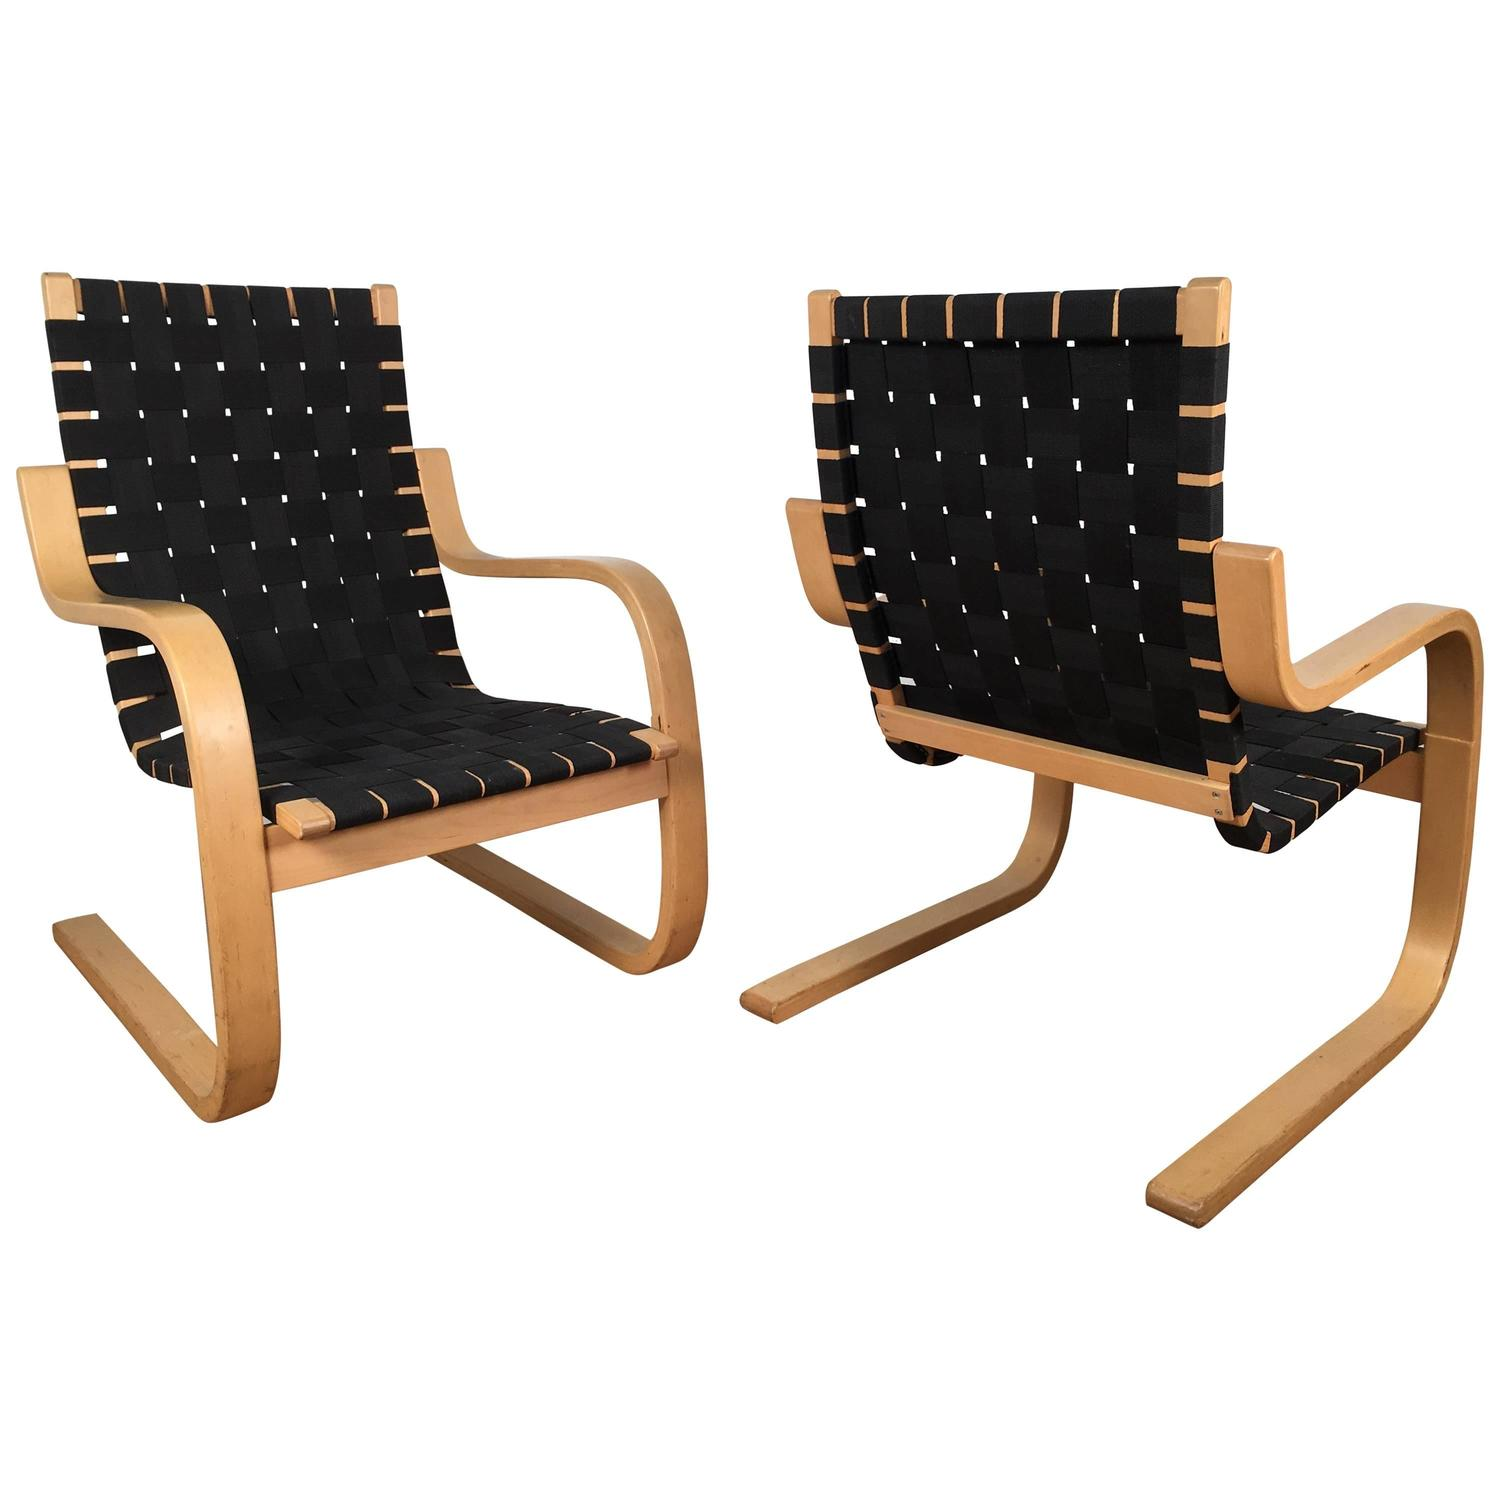 Pair of alvar aalto 406 lounge chairs for sale at 1stdibs for Alvar aalto chaise lounge